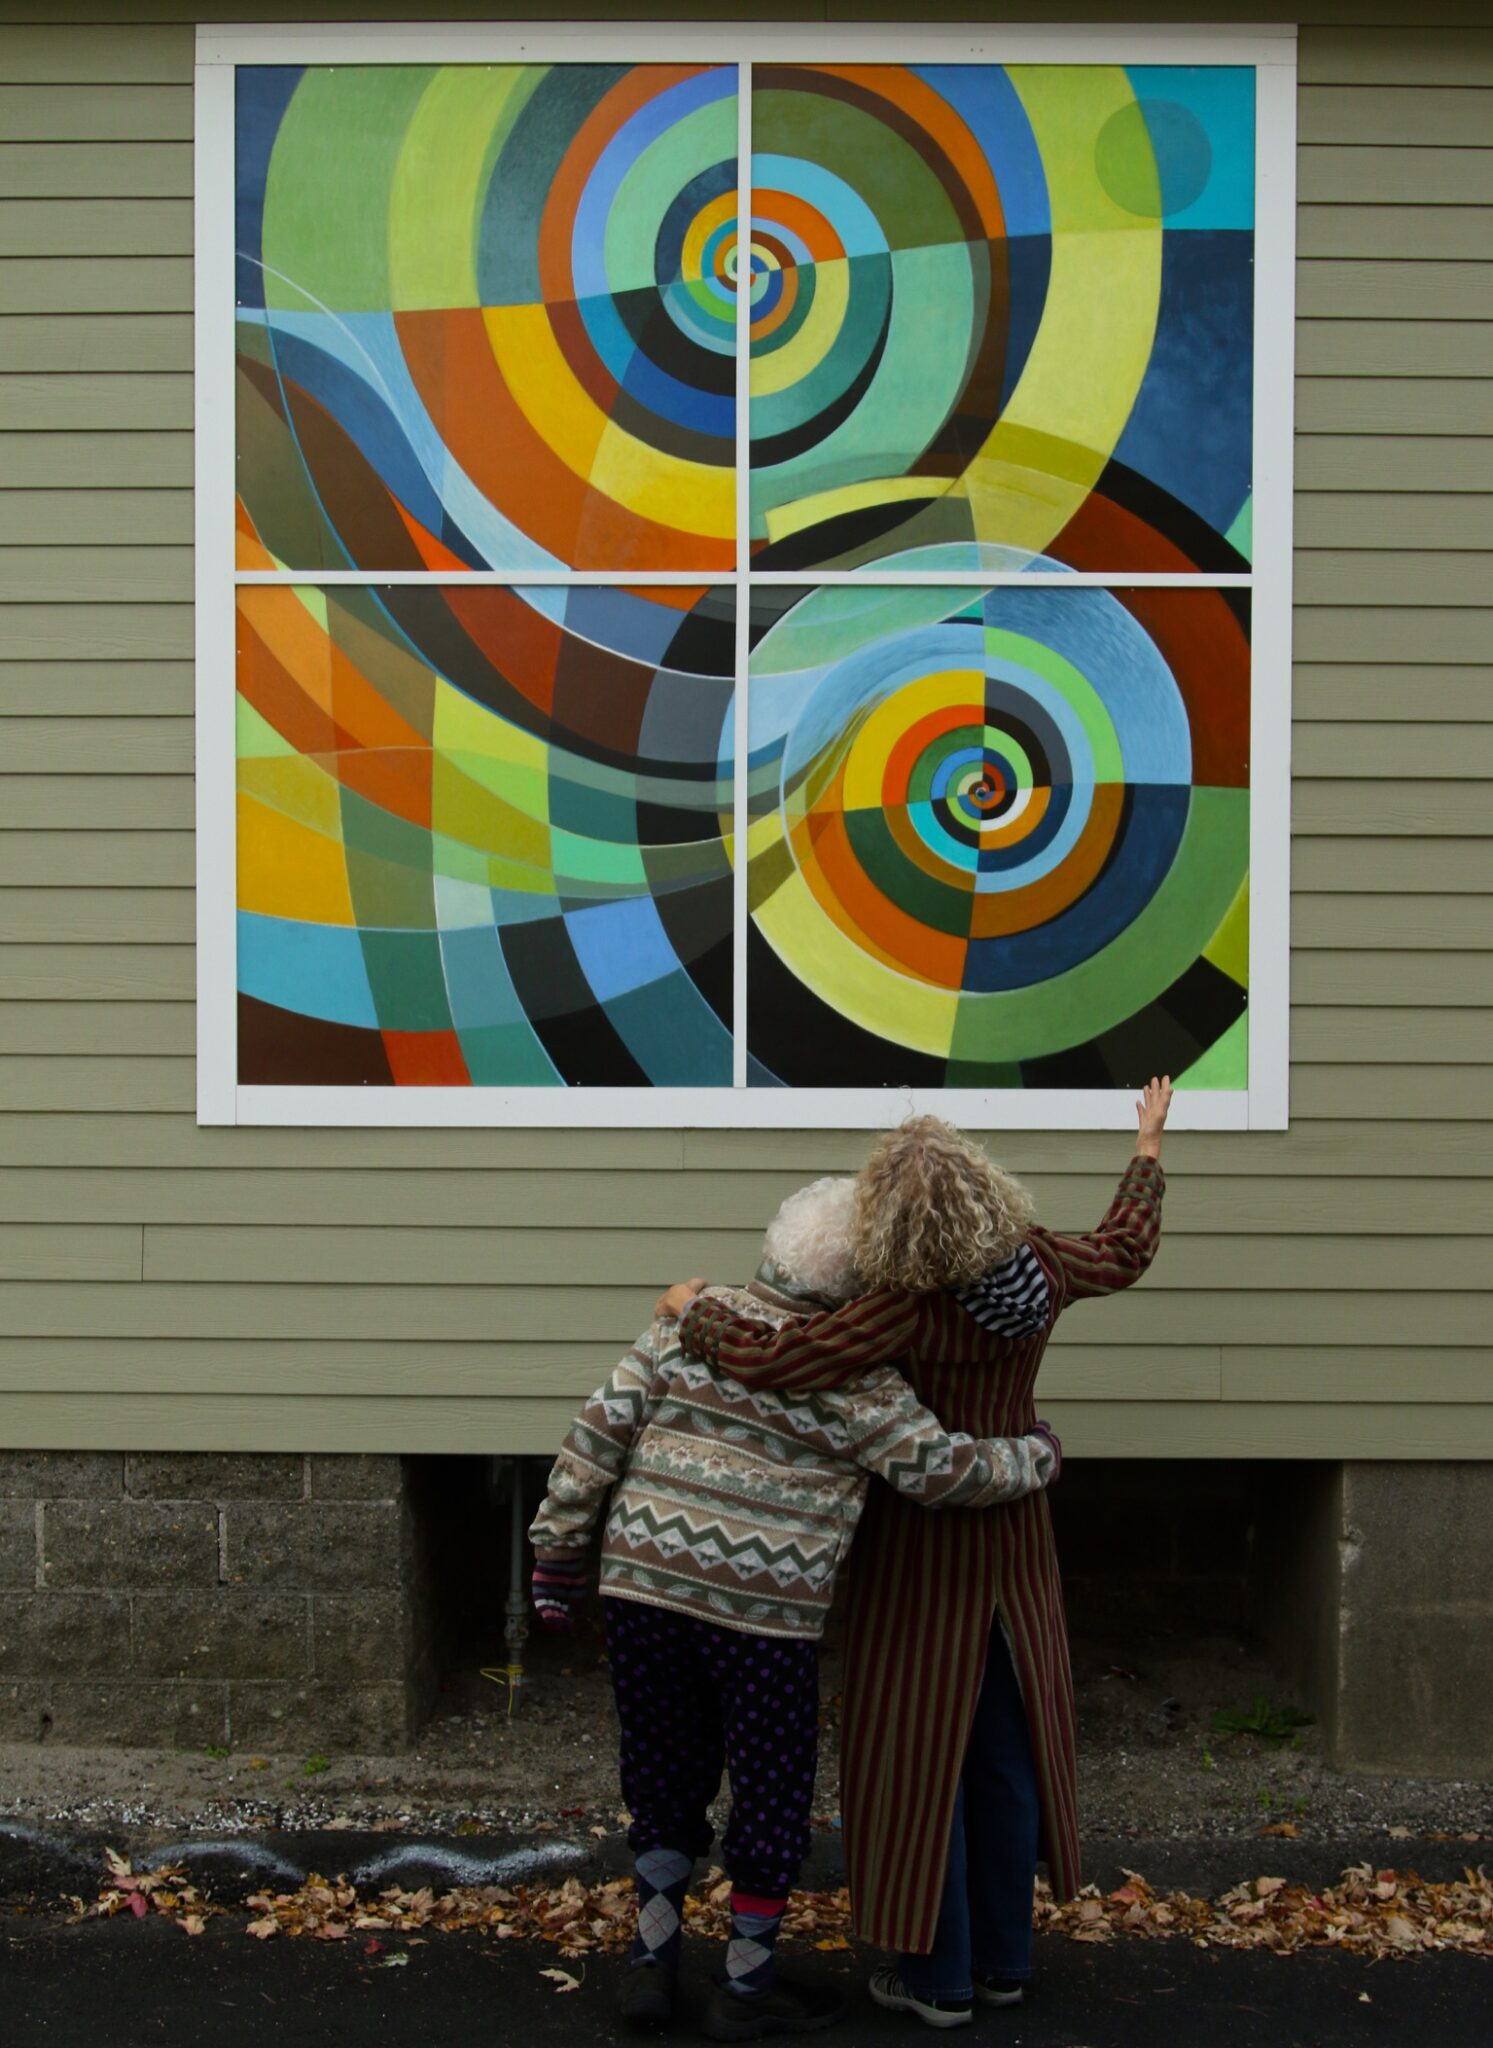 Abstract outdoor mural by Abbie Rabinowitz